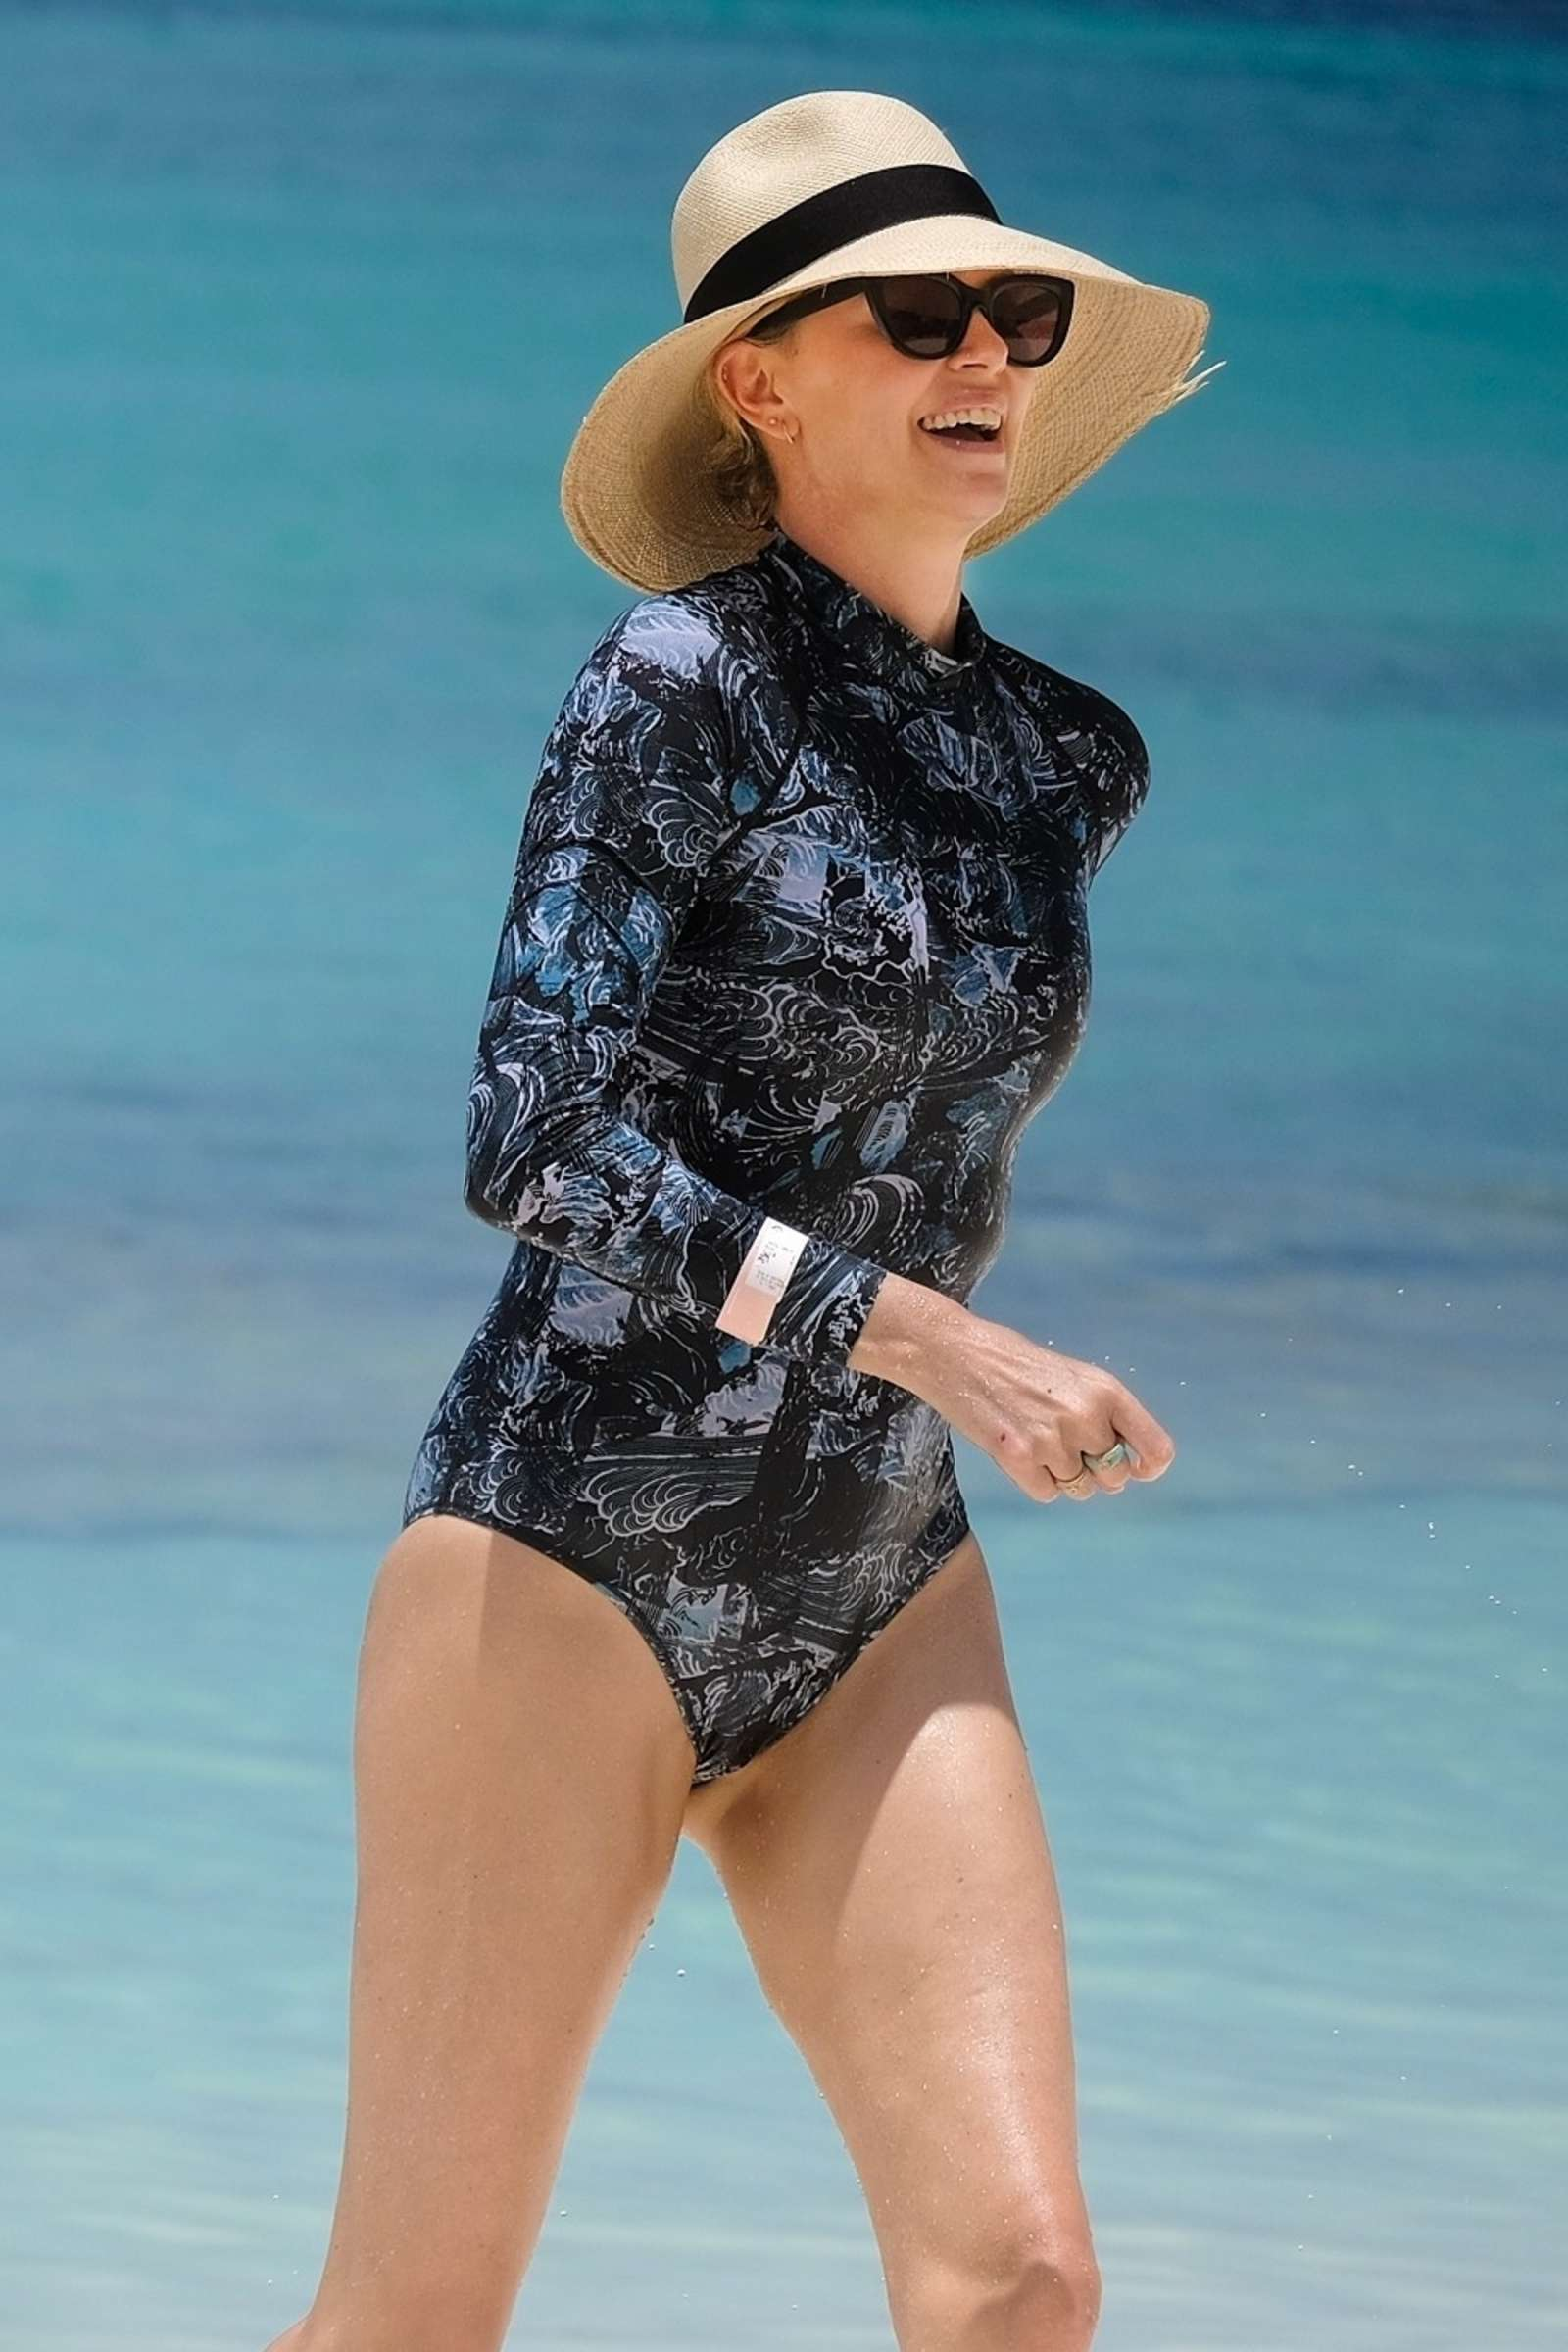 Charlize Theron in Swimsuit at the beach in Bahamas